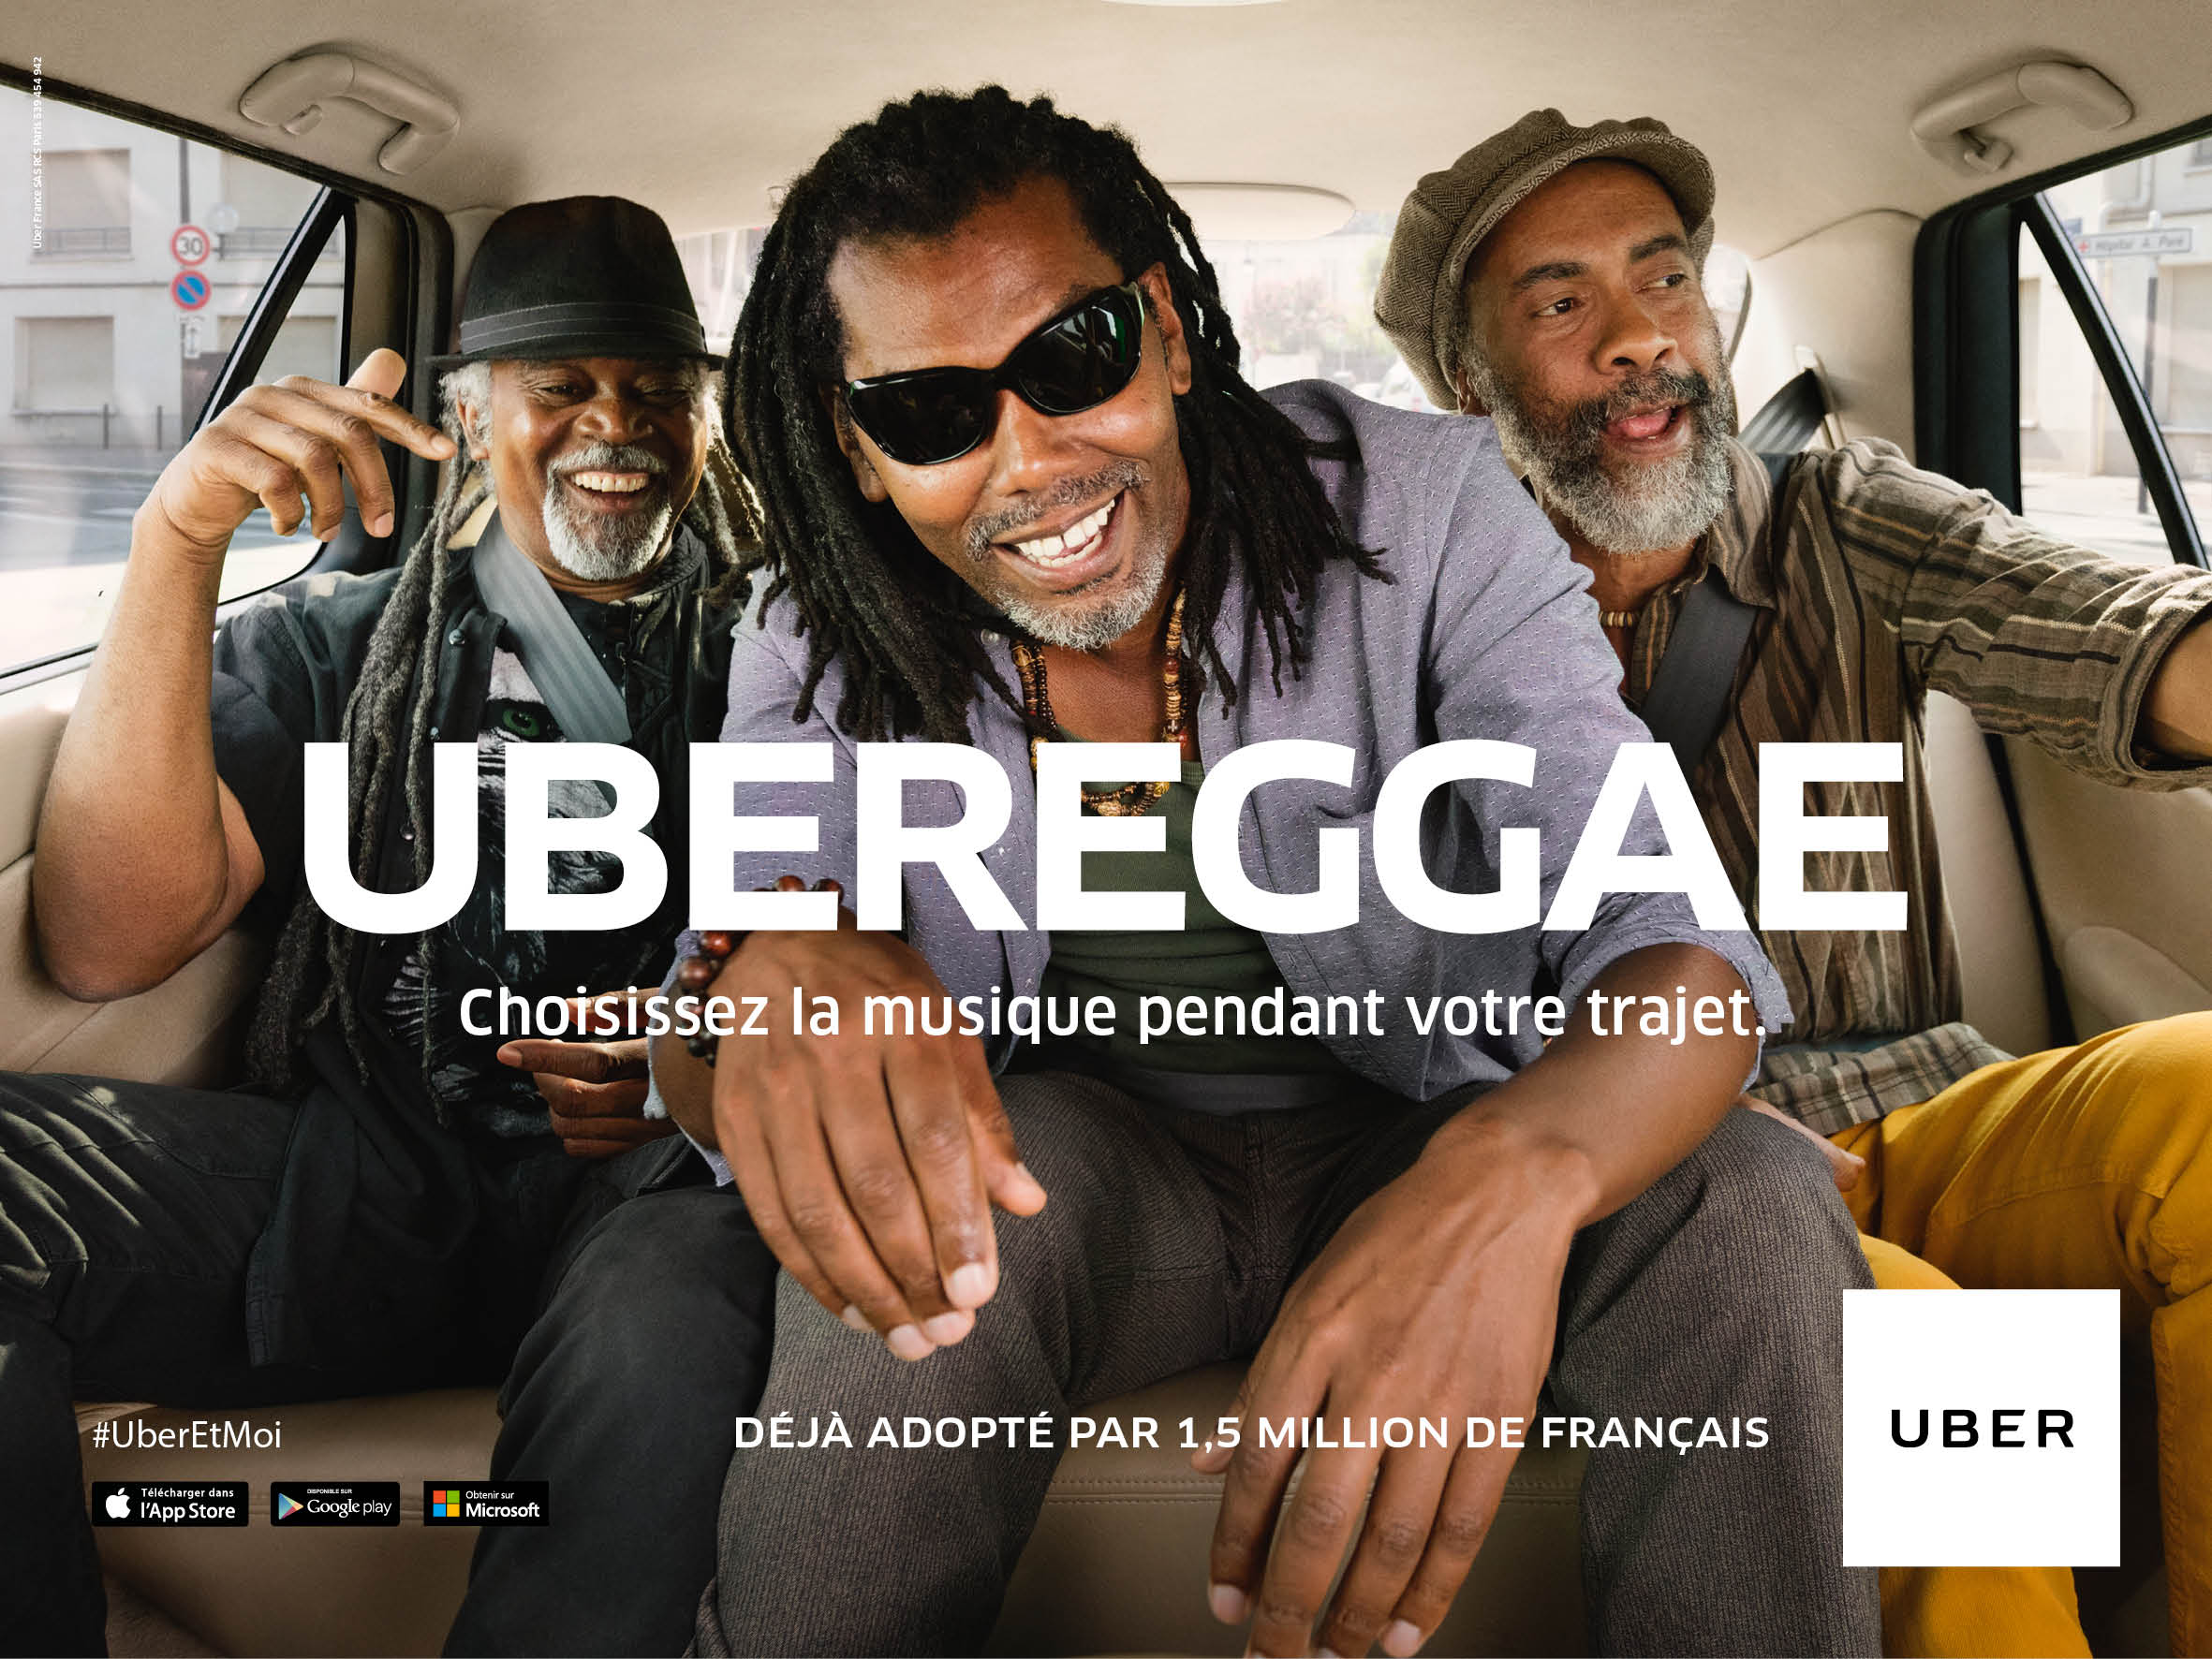 uber-france-publicite-marketing-application-utilisateurs-passagers-mars-2016-agence-marcel-publicis-5